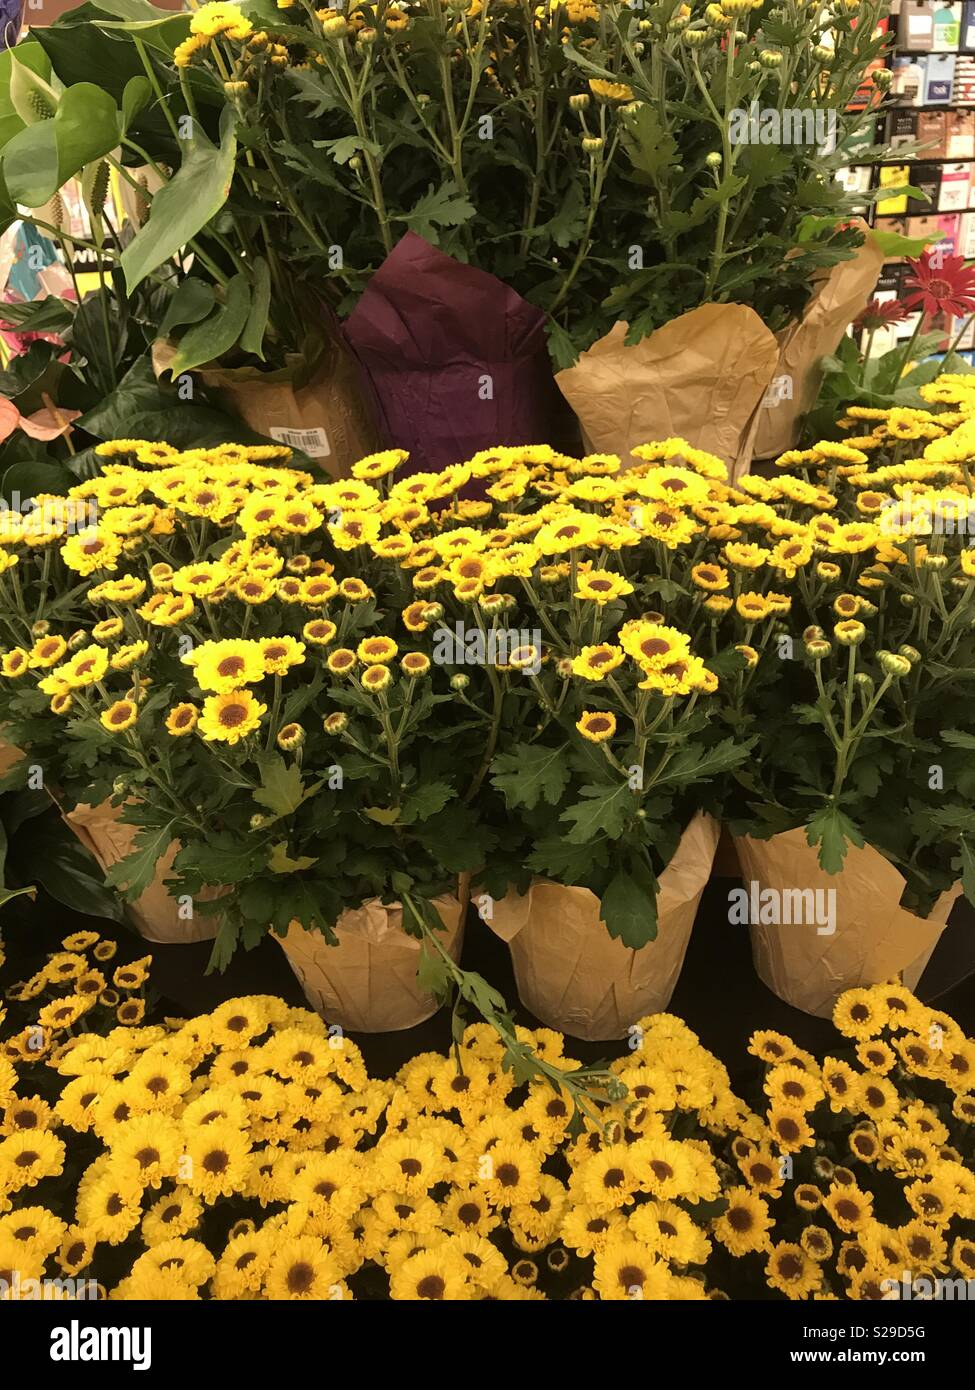 Display Of Yellow Daisies Flowers In Pots There Are Three Levels Of